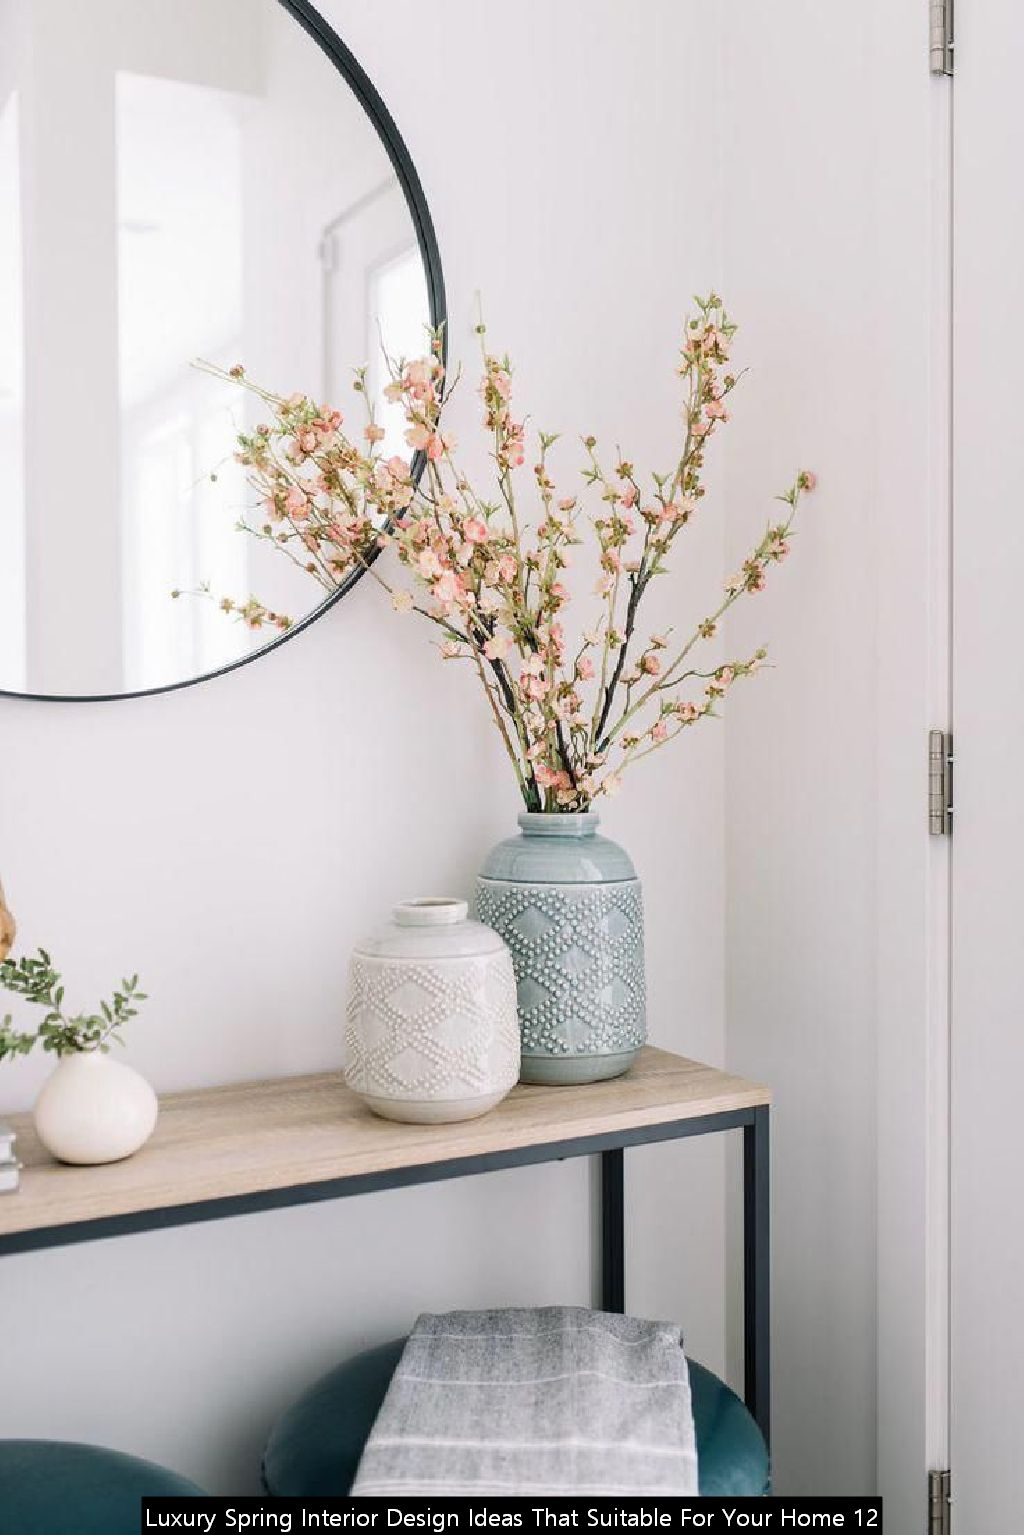 Luxury Spring Interior Design Ideas That Suitable For Your Home 12